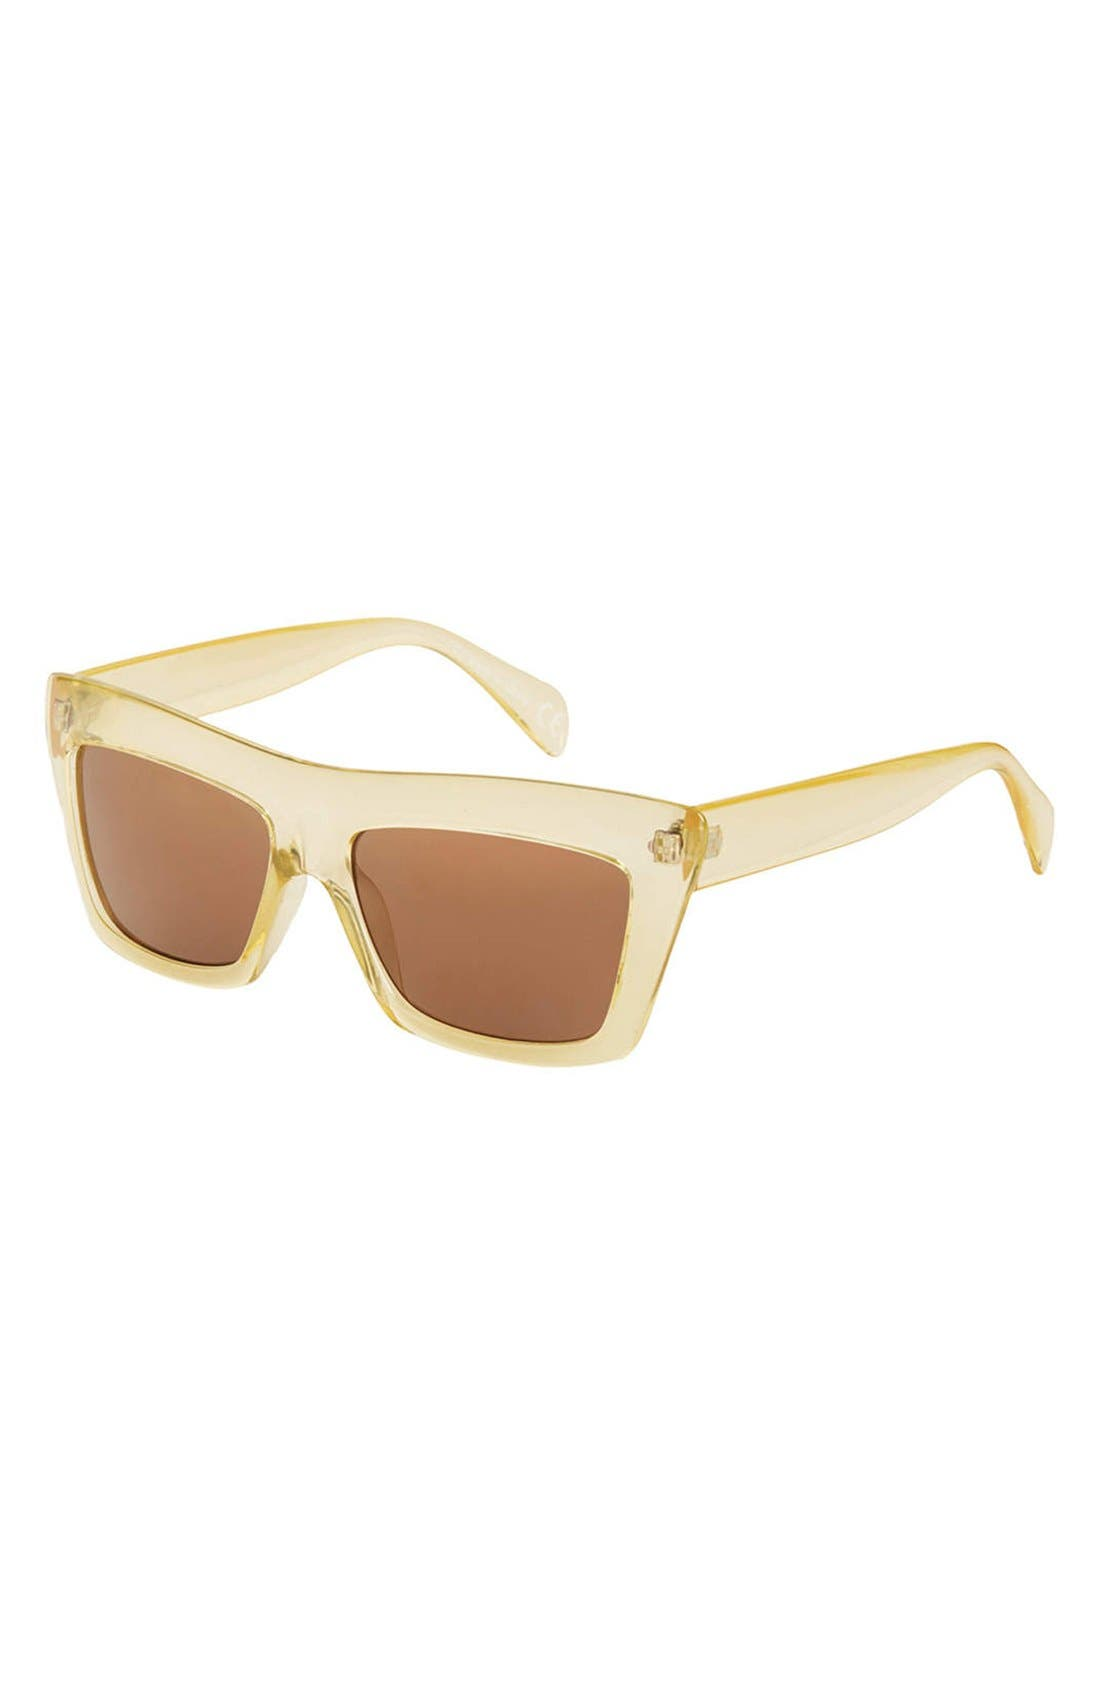 Main Image - Topshop 'Wicked' 55mm Clear Frame Sunglasses